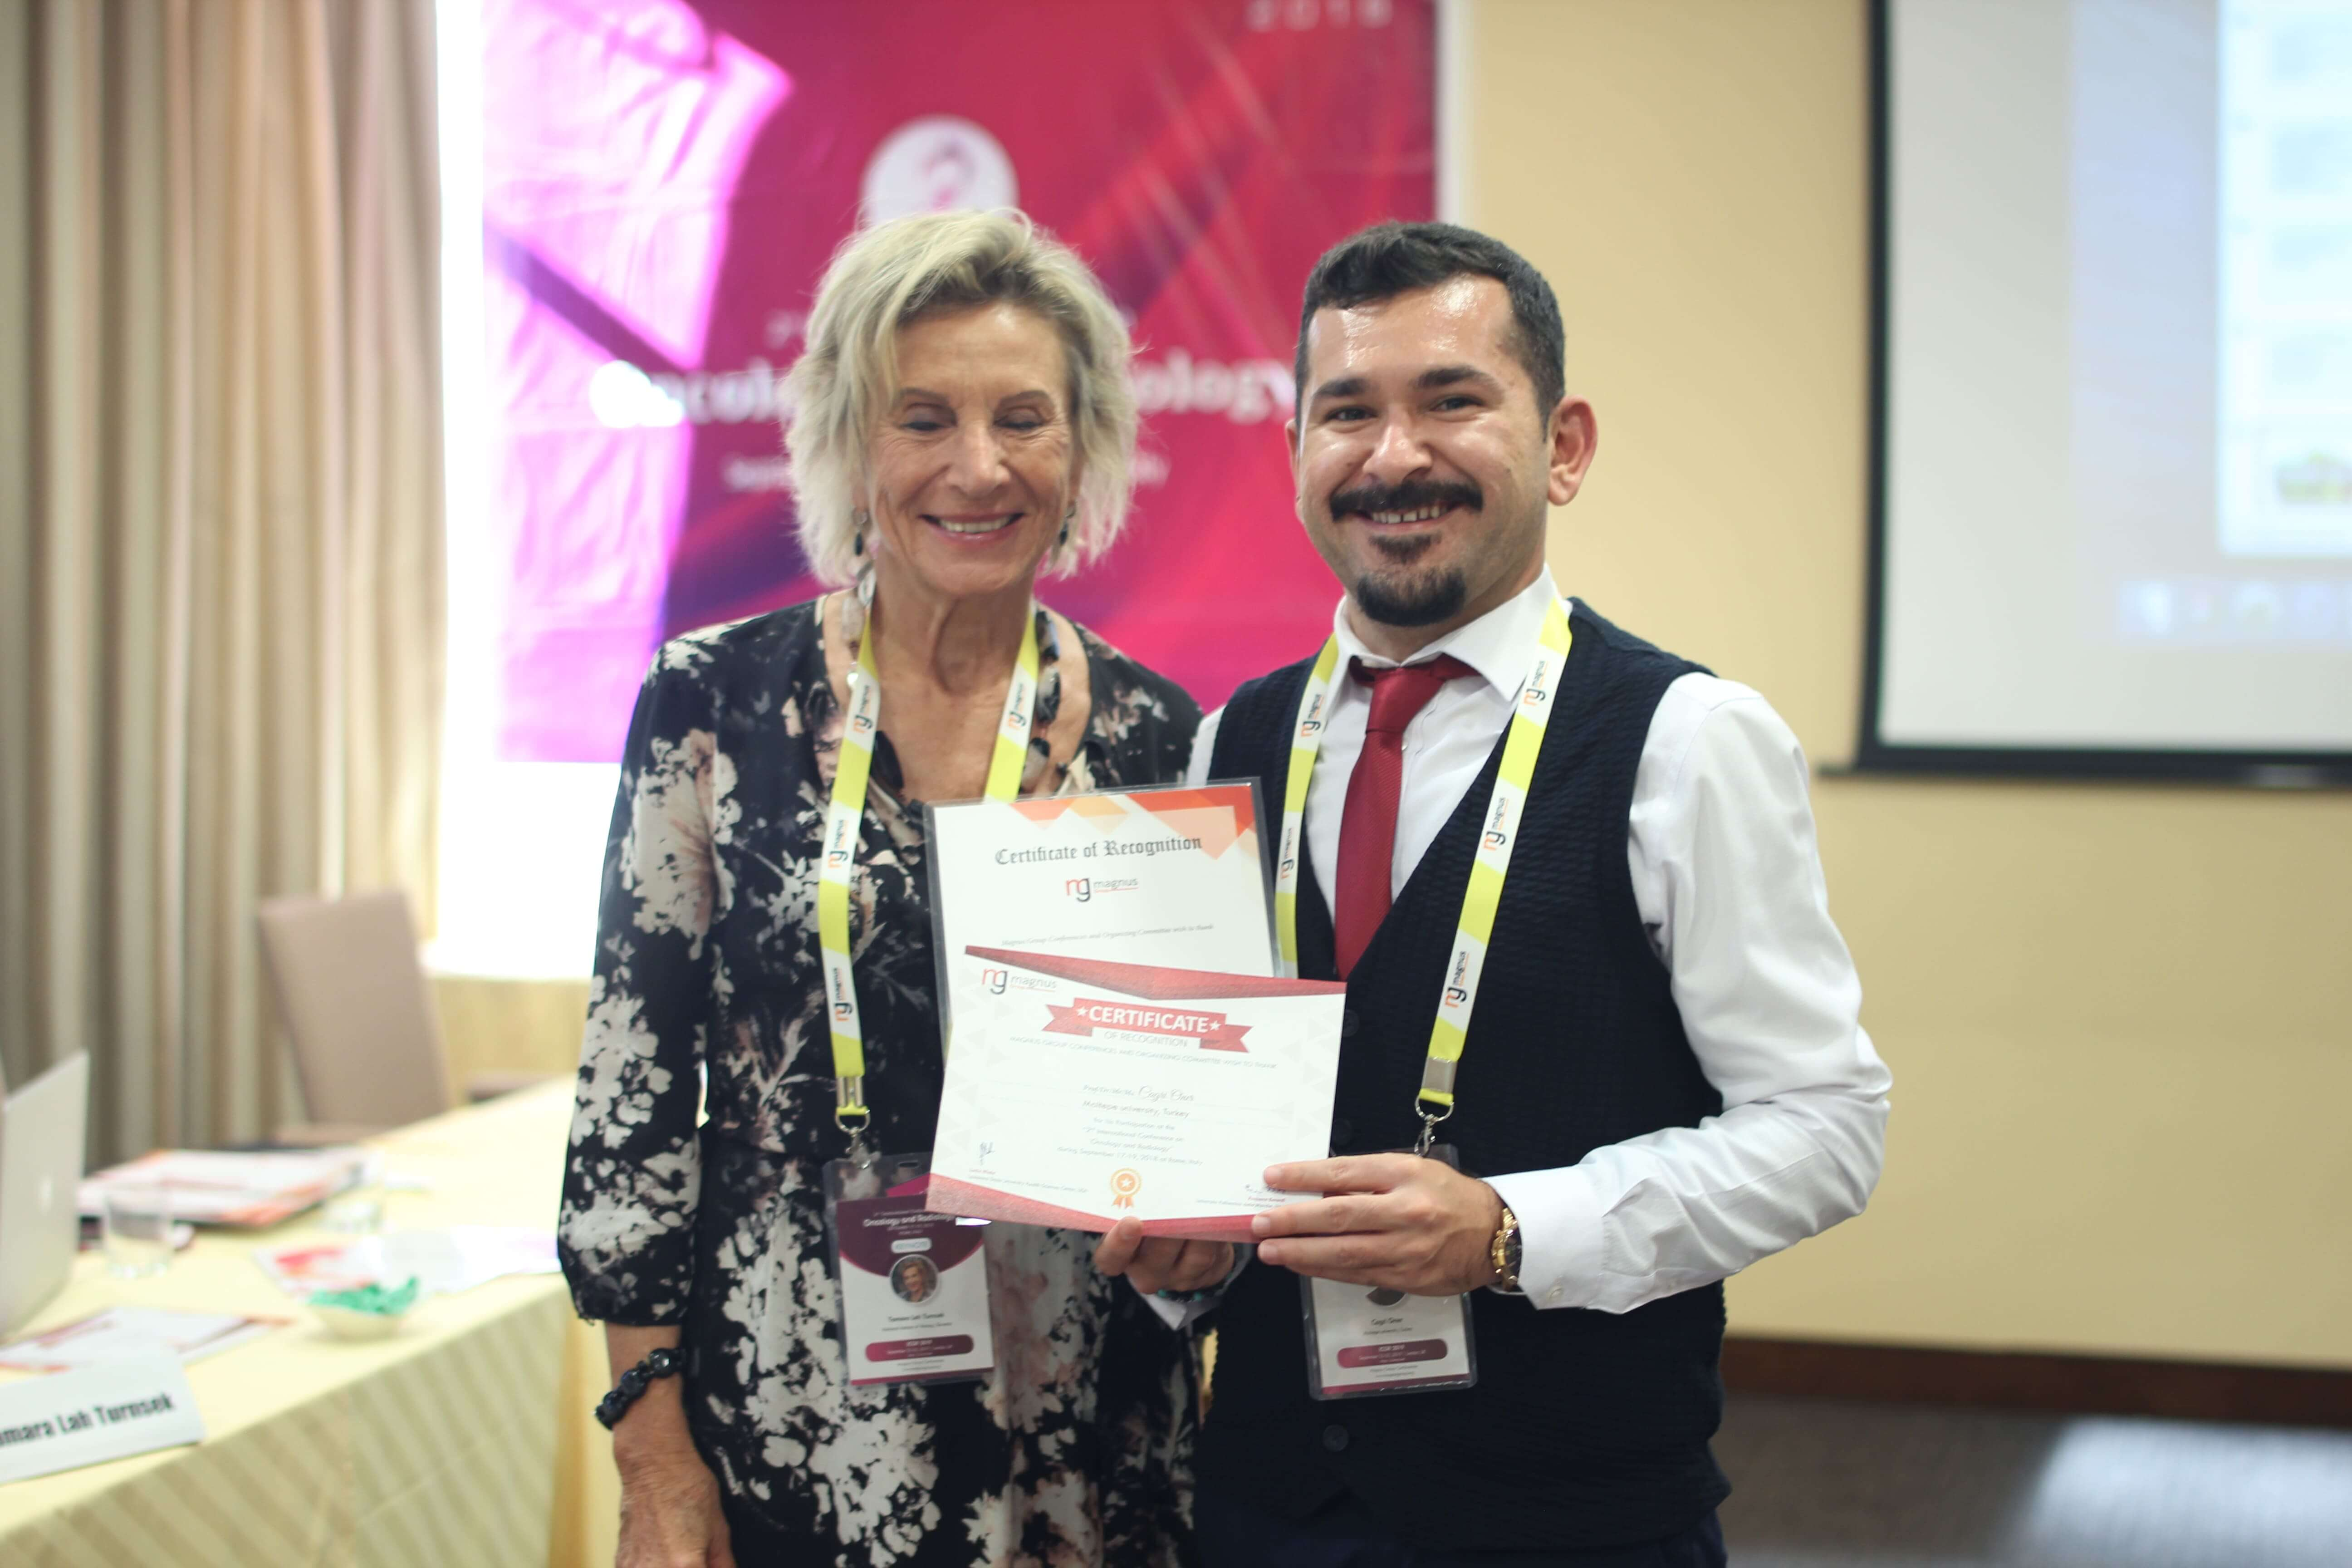 Cancer research conferences - Cagri Oner